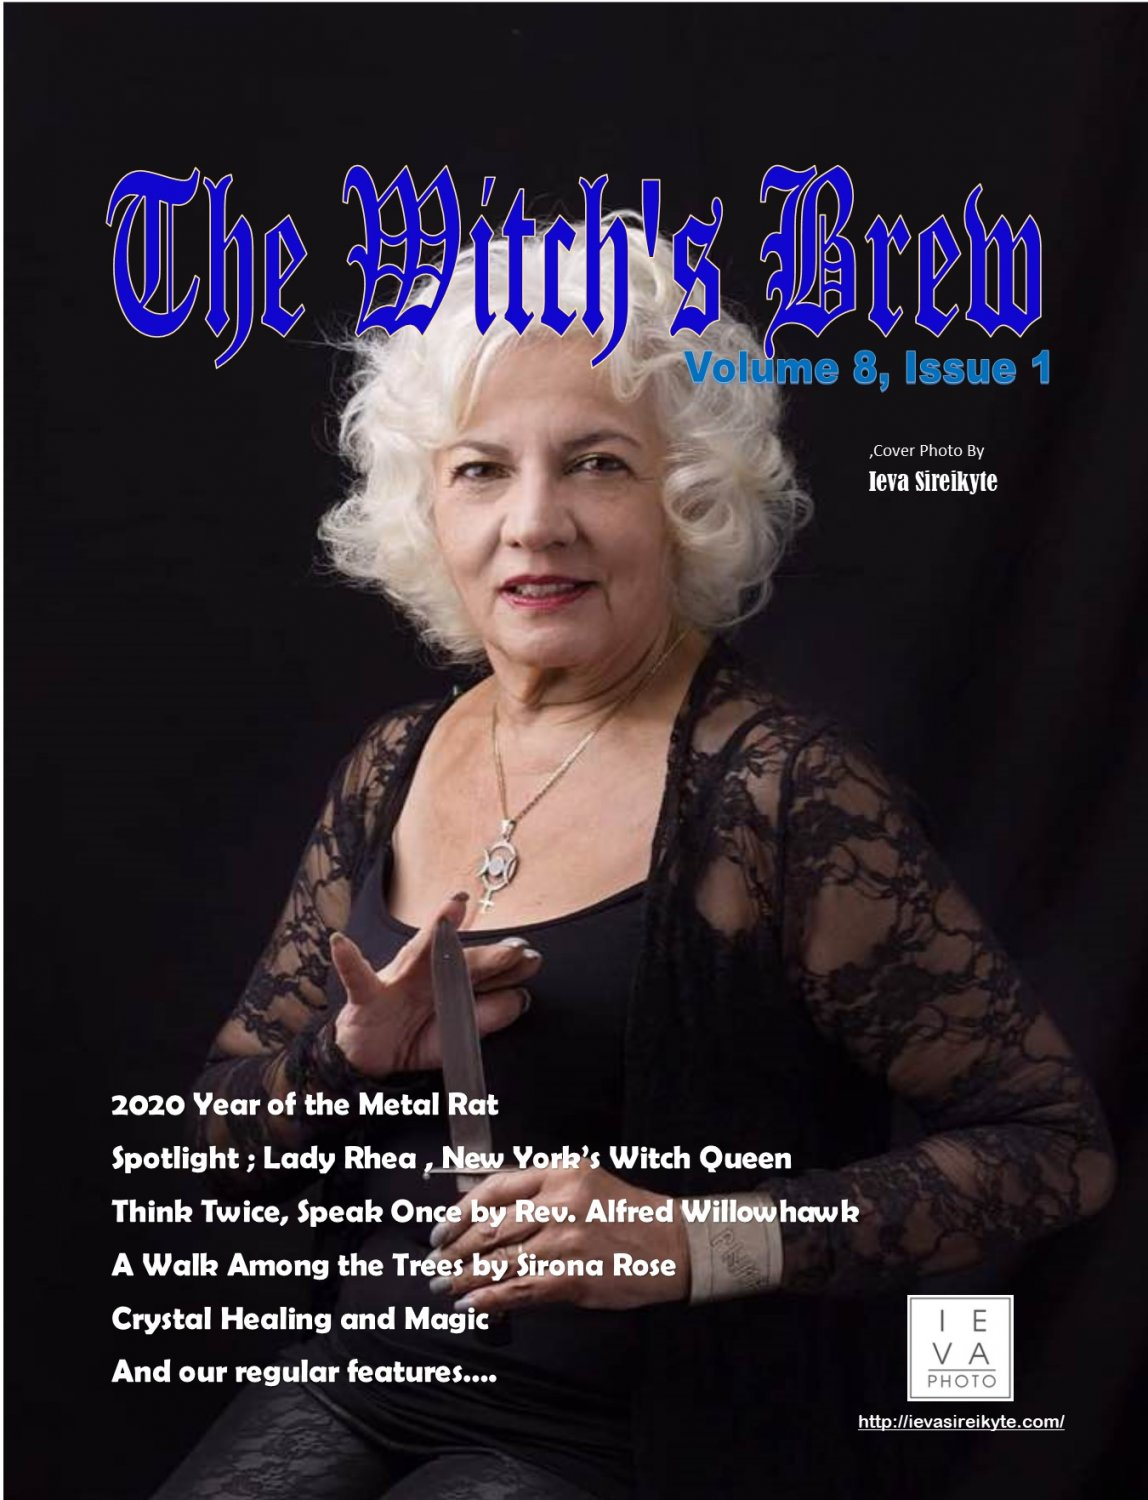 The Witch's Brew, Vol 8 Issue 1